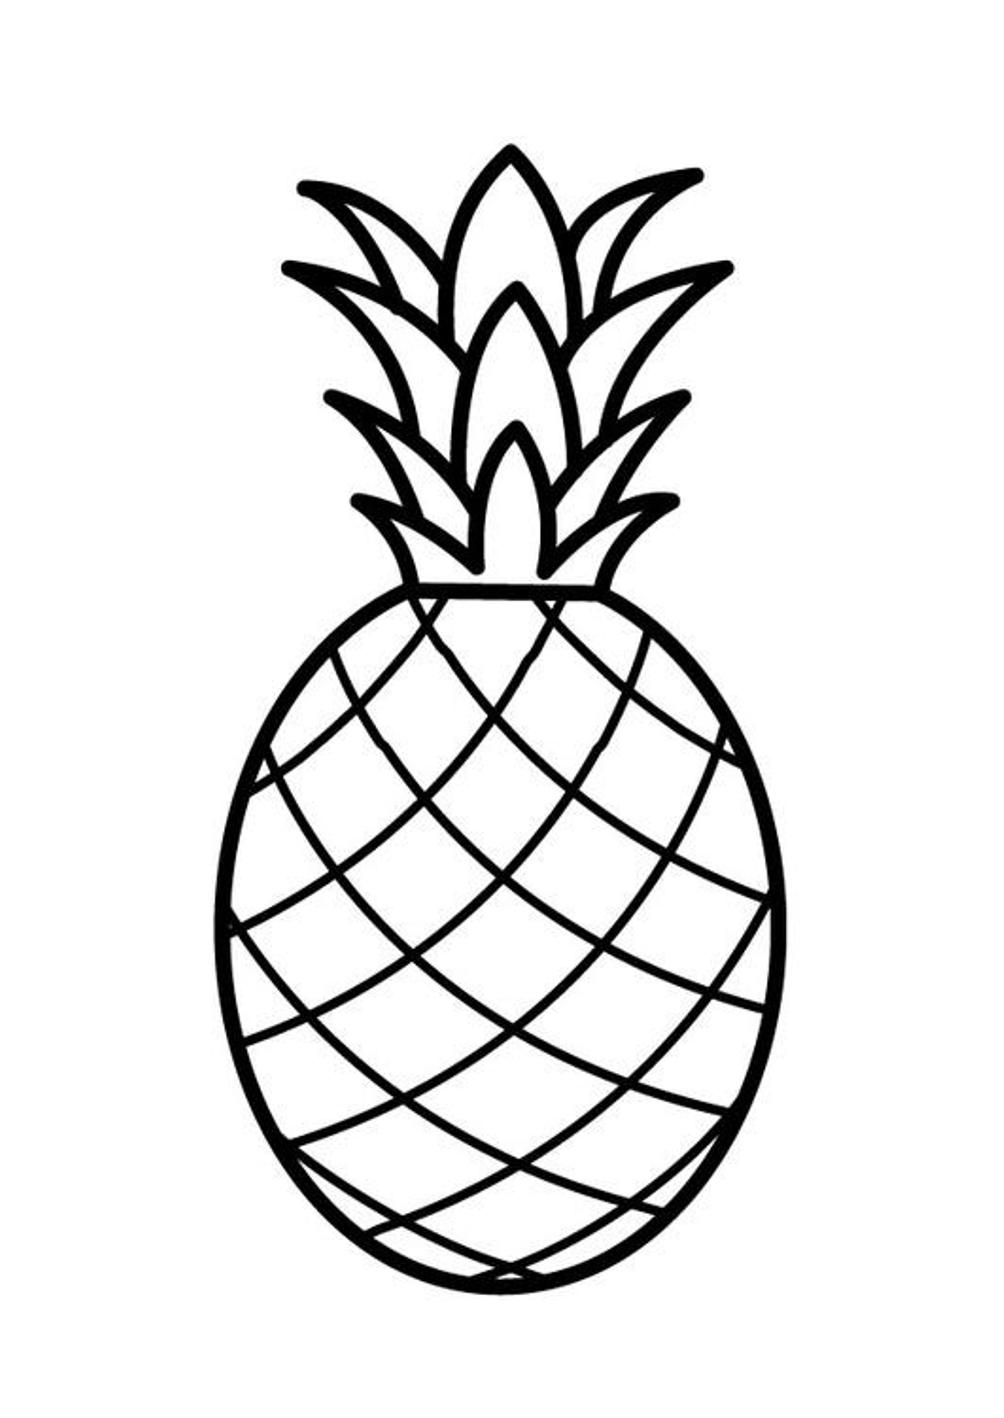 Pineapple clipart drawn. Simple drawing free download